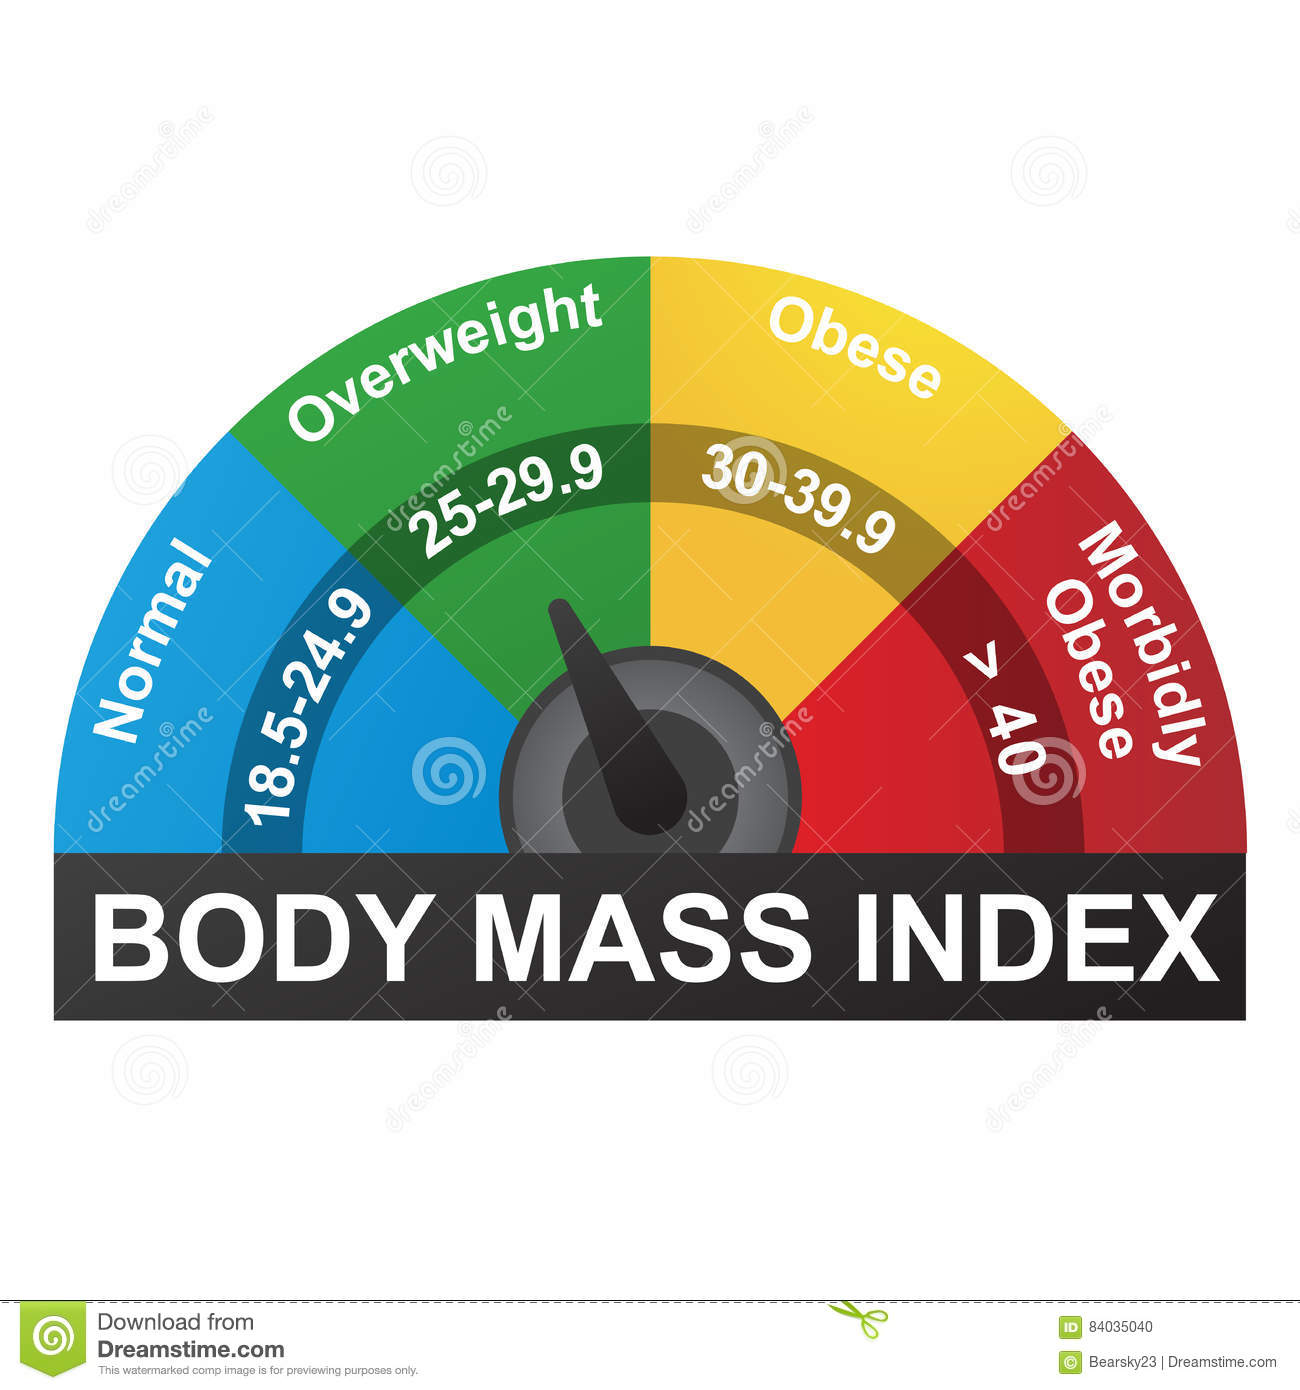 Bmi or body mass index infographic chart stock vector illustration bmi or body mass index infographic chart geenschuldenfo Choice Image